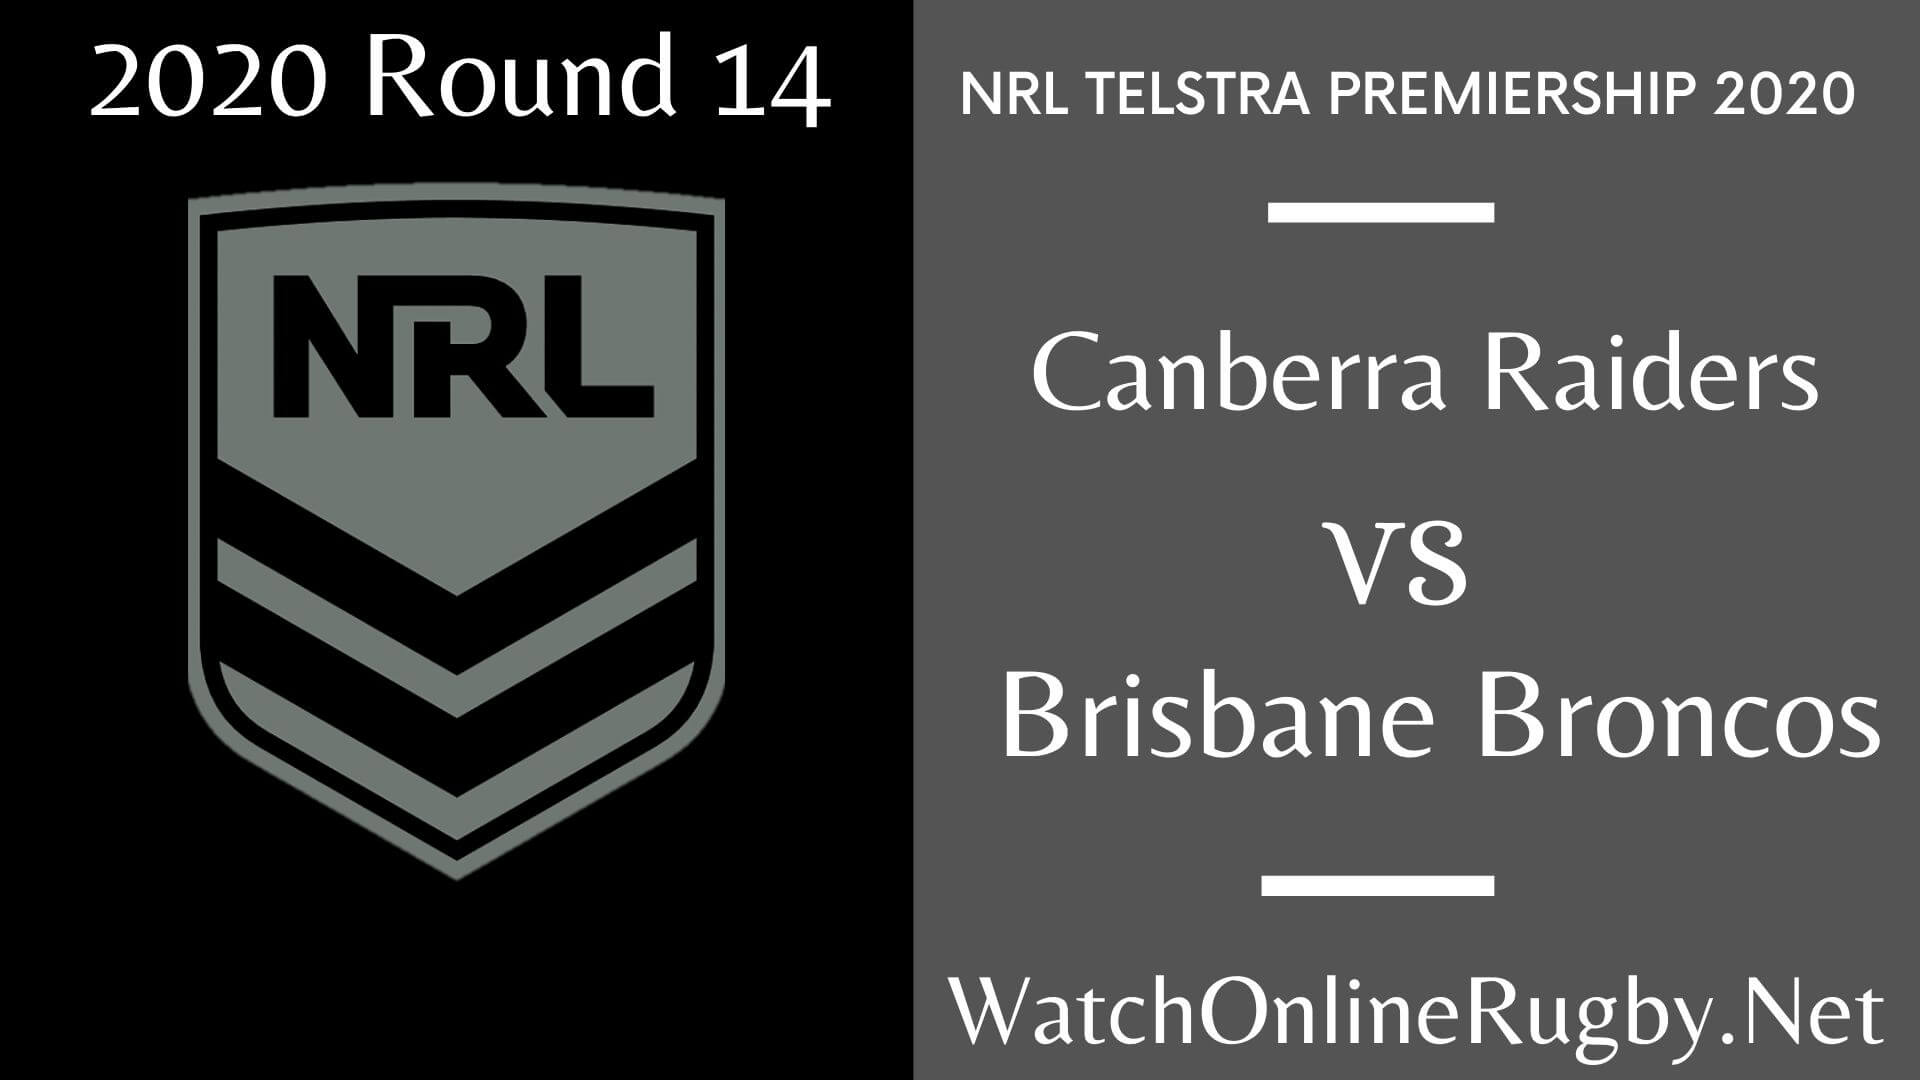 Canberra Raiders Vs Brisbane Broncos Highlights 2020 Round 14 NRL Rugby